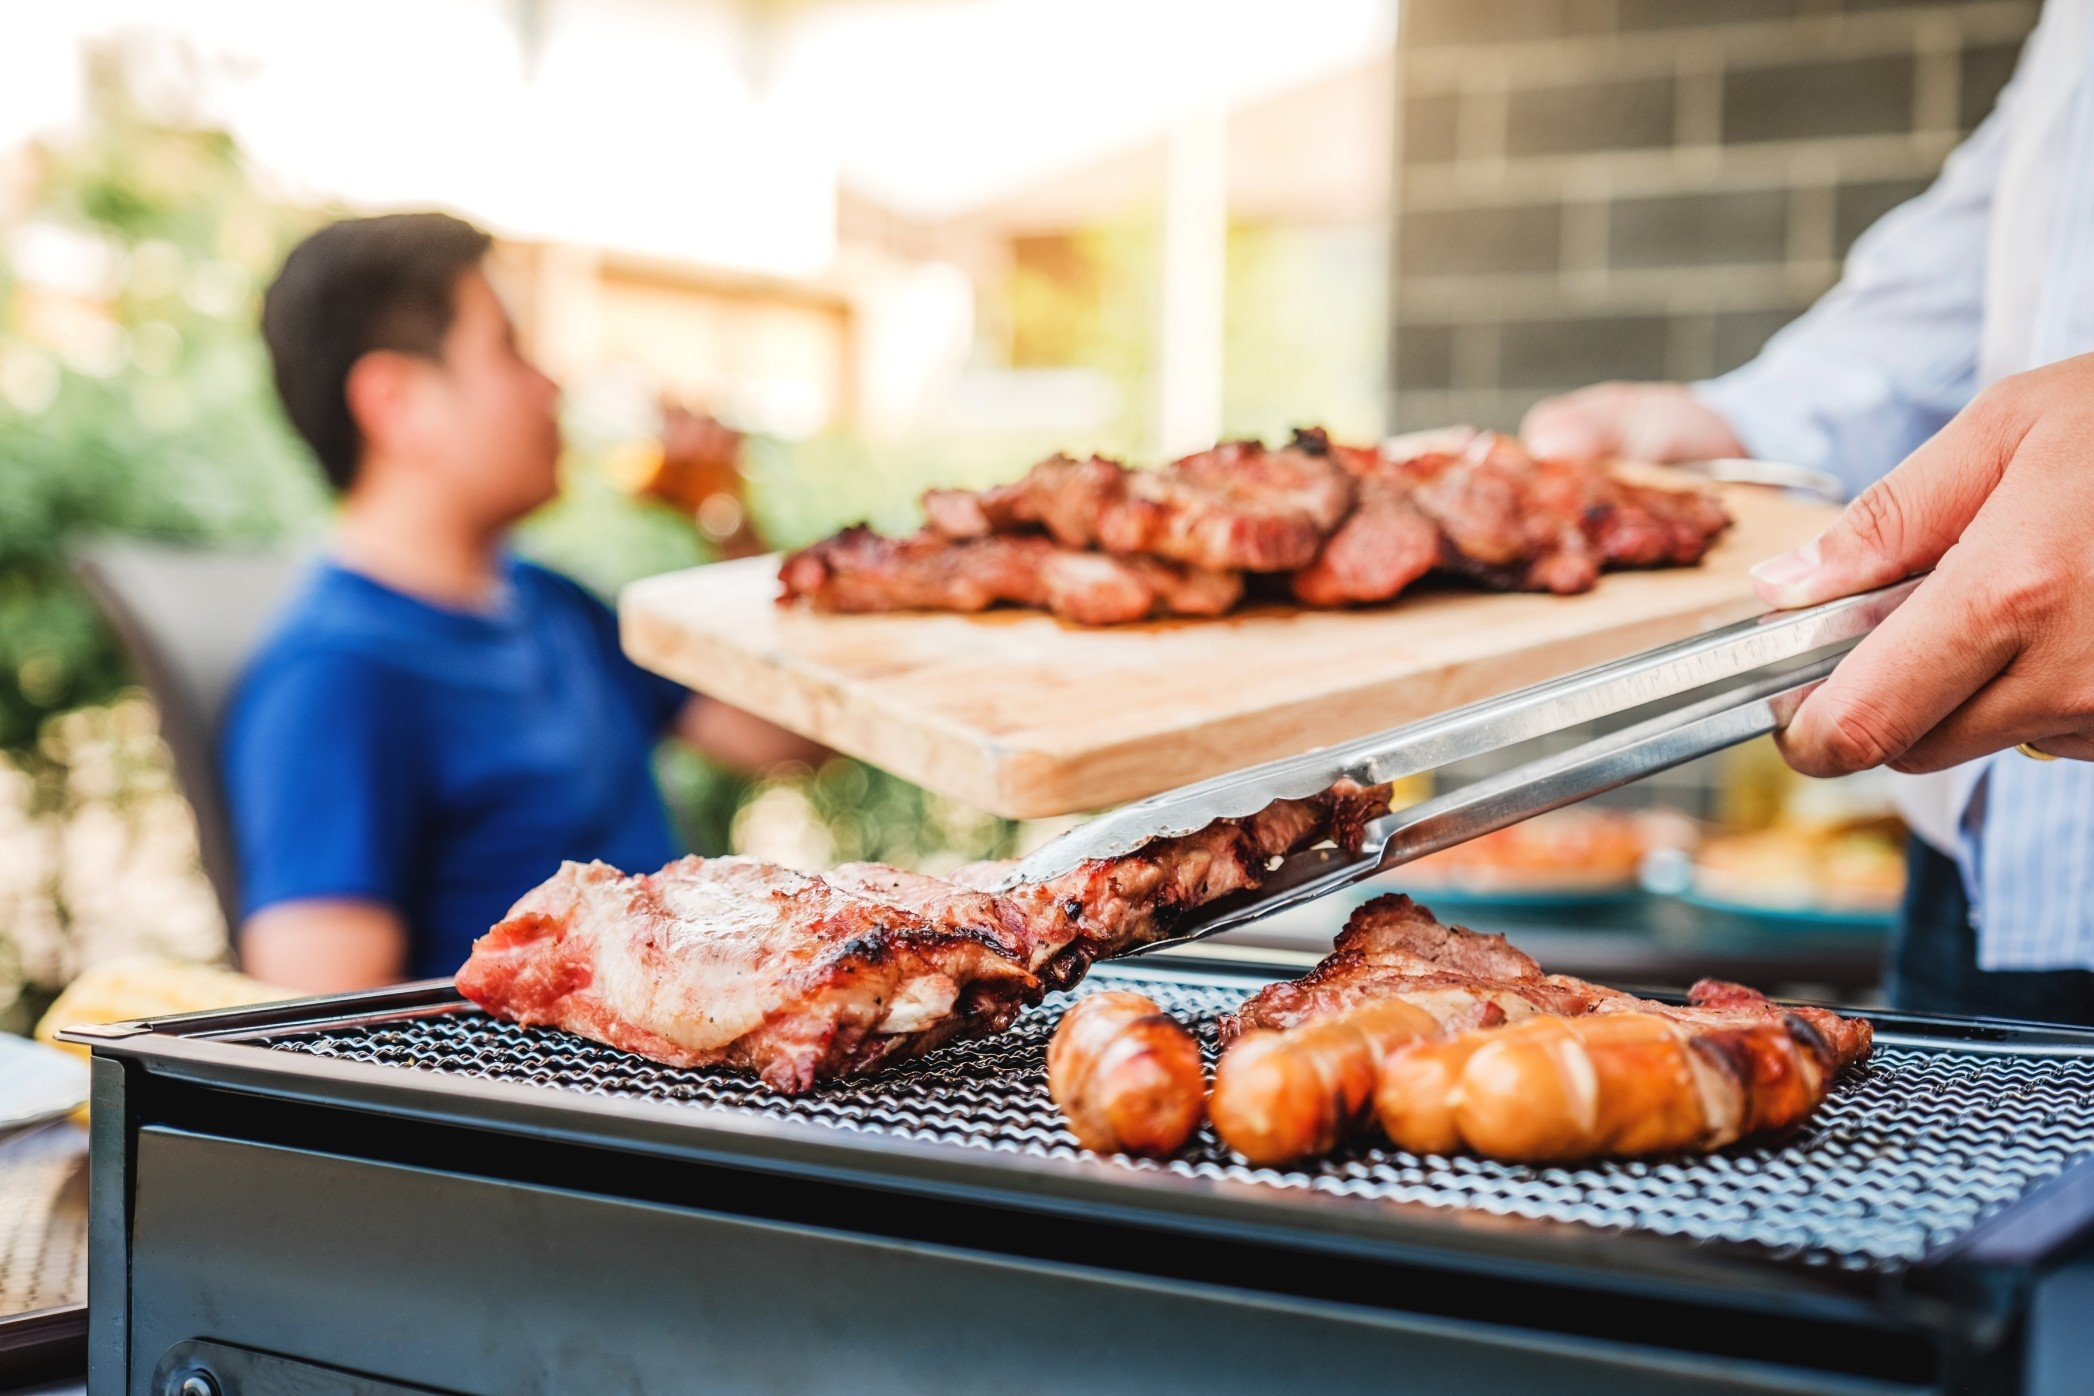 Best Grill Gifts For Grillmasters & BBQ Lovers